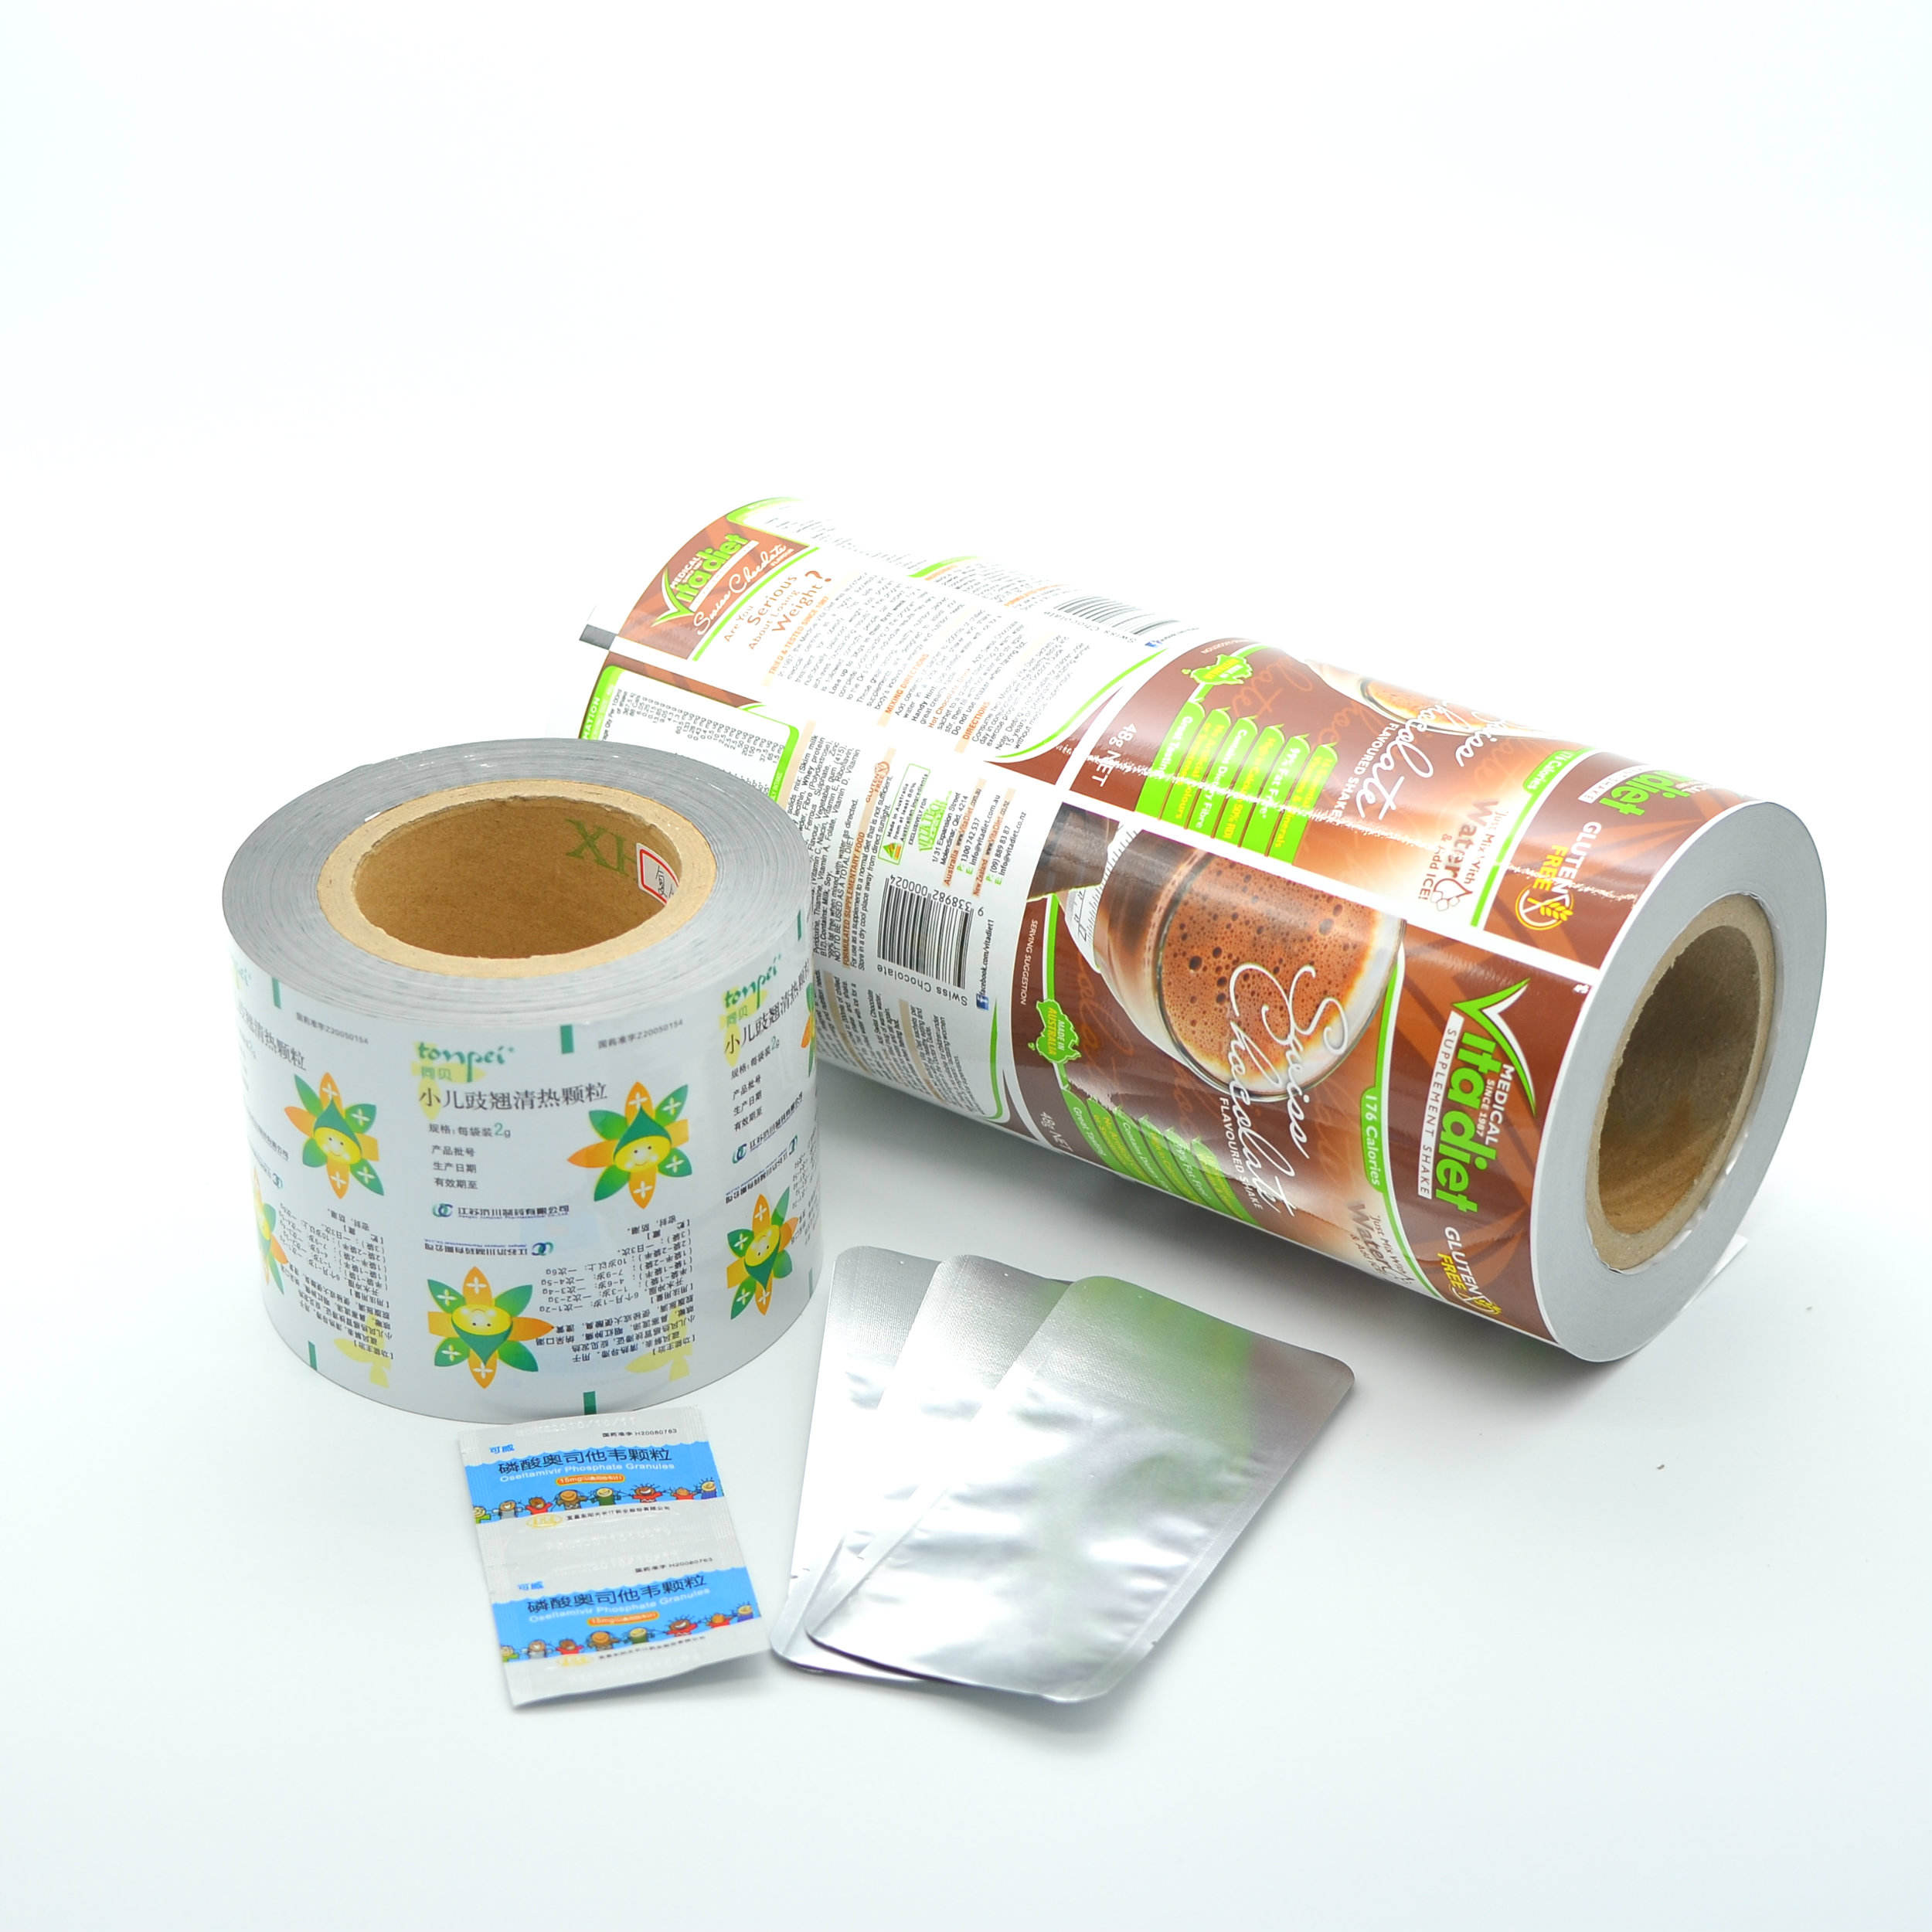 BOPP/AL/CPP composite film for making sachets